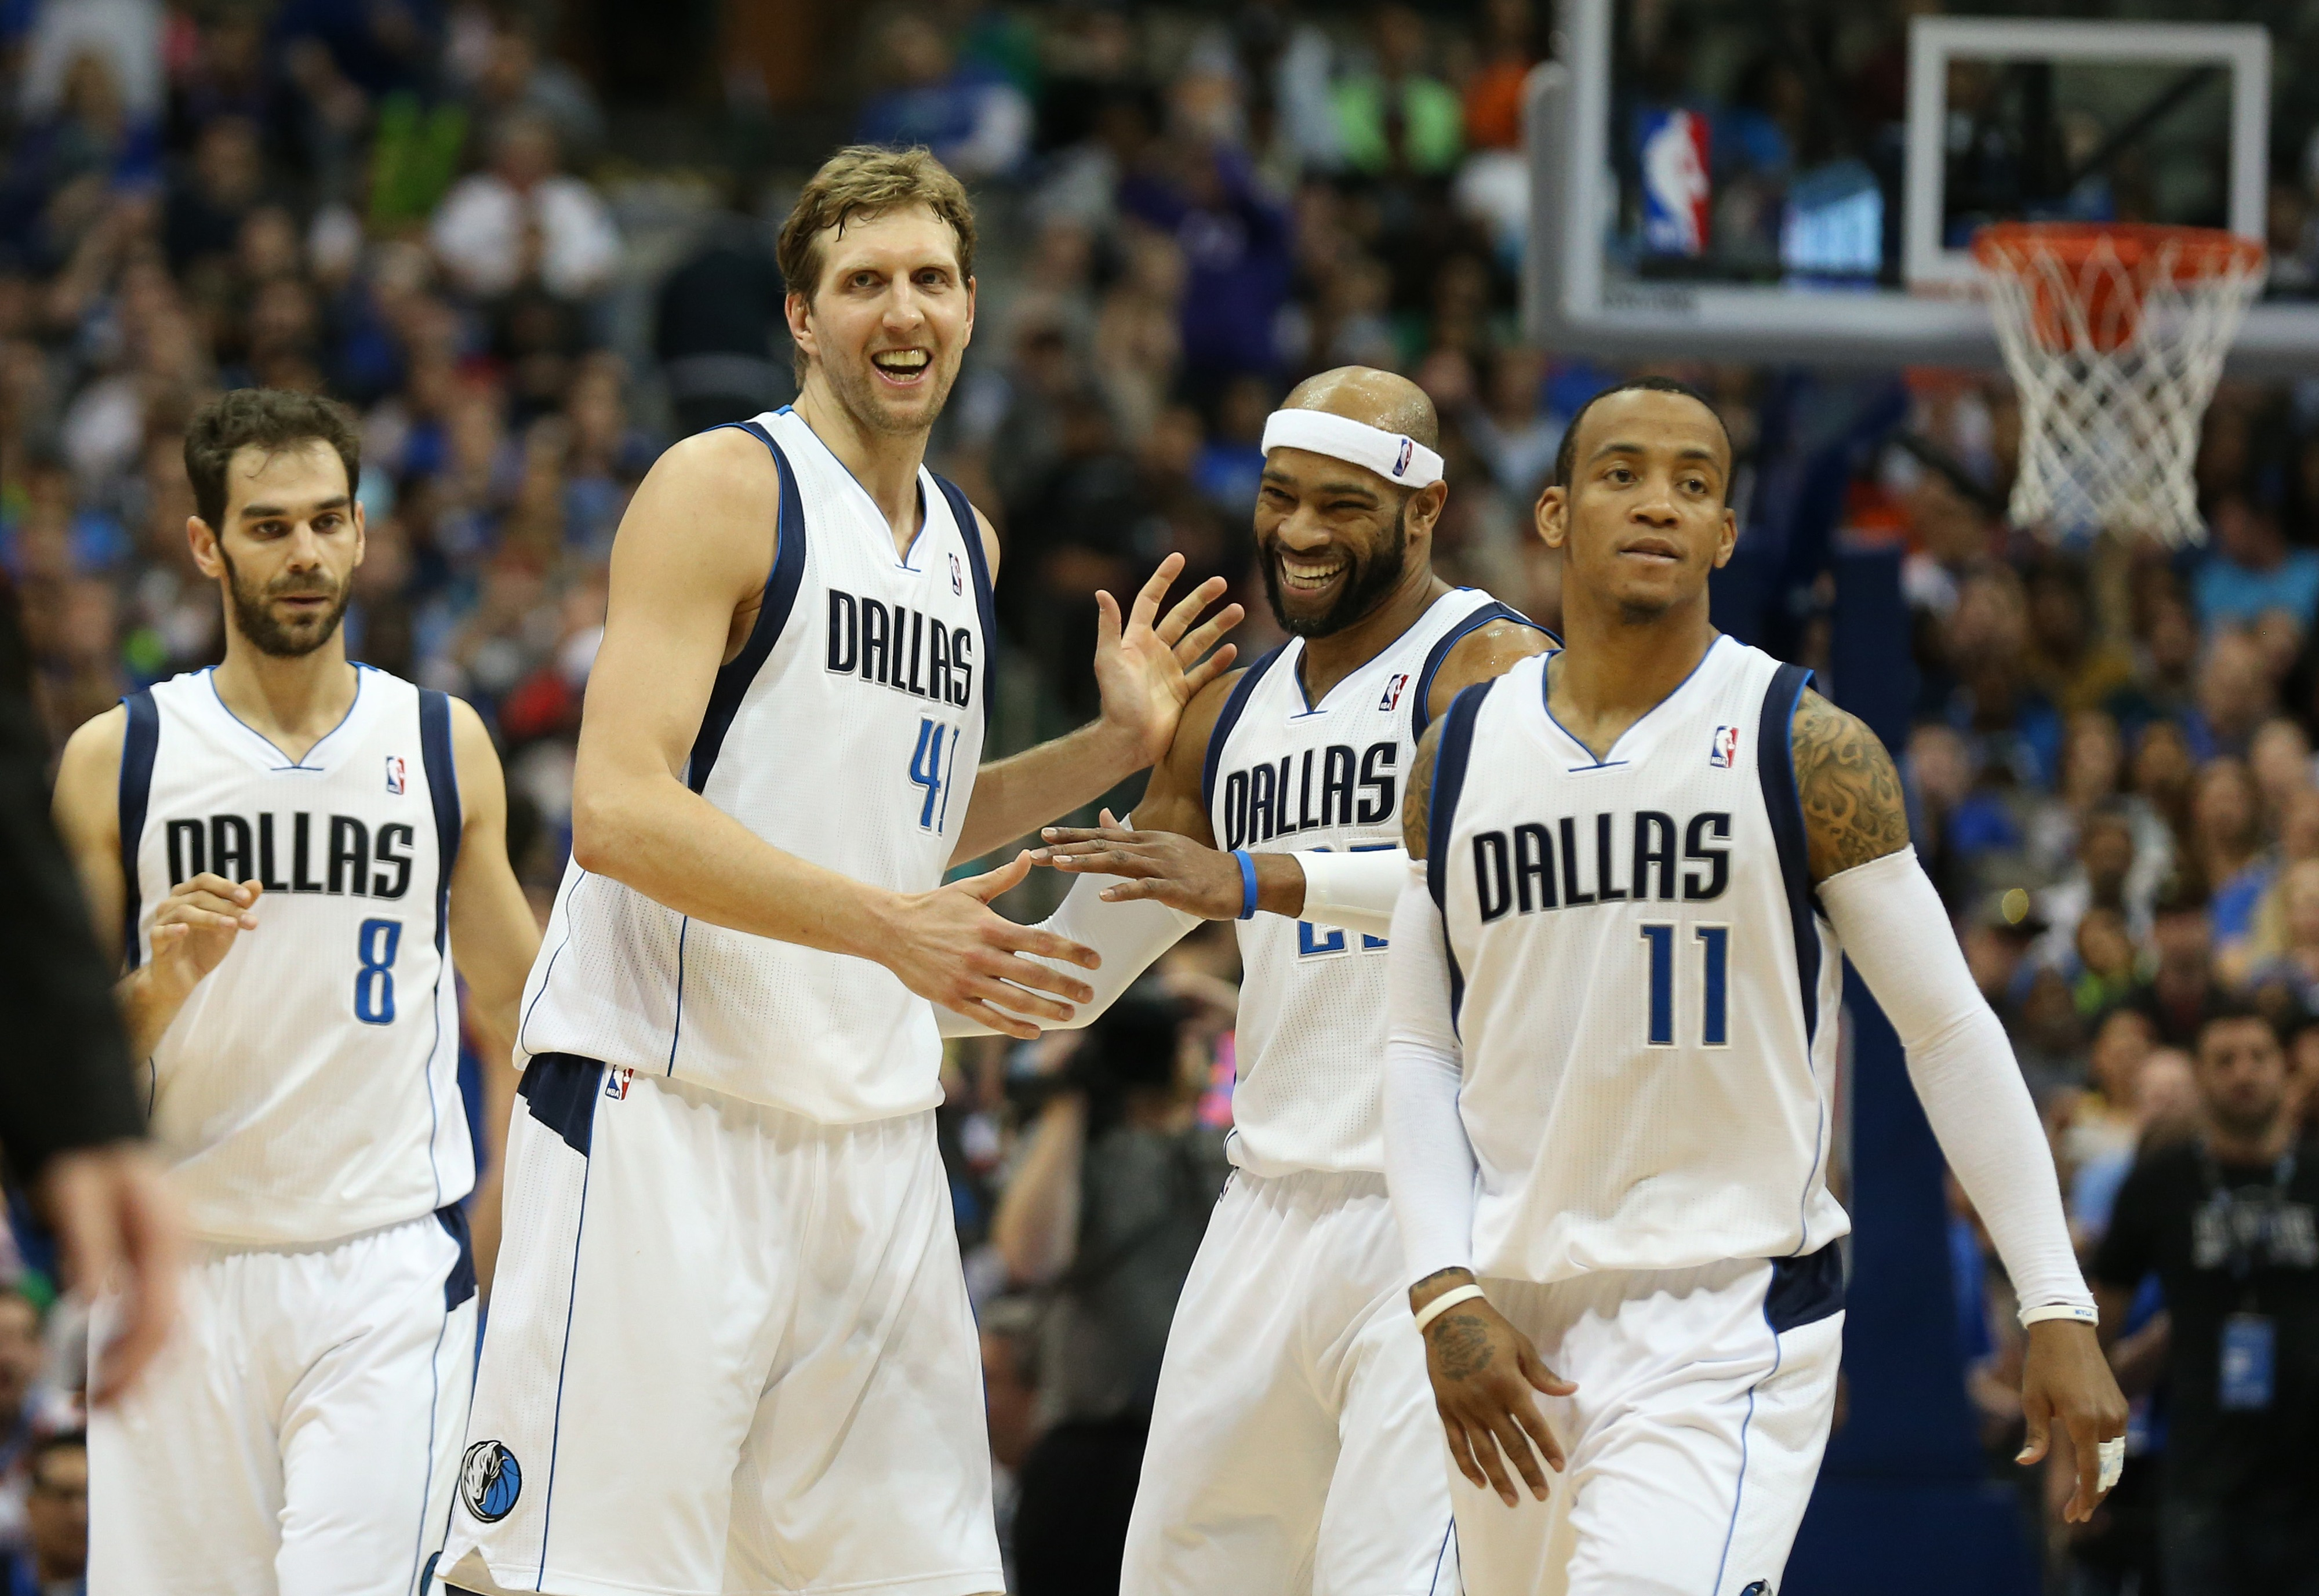 Dallas Mavericks claw back to postseason after 1-year absence